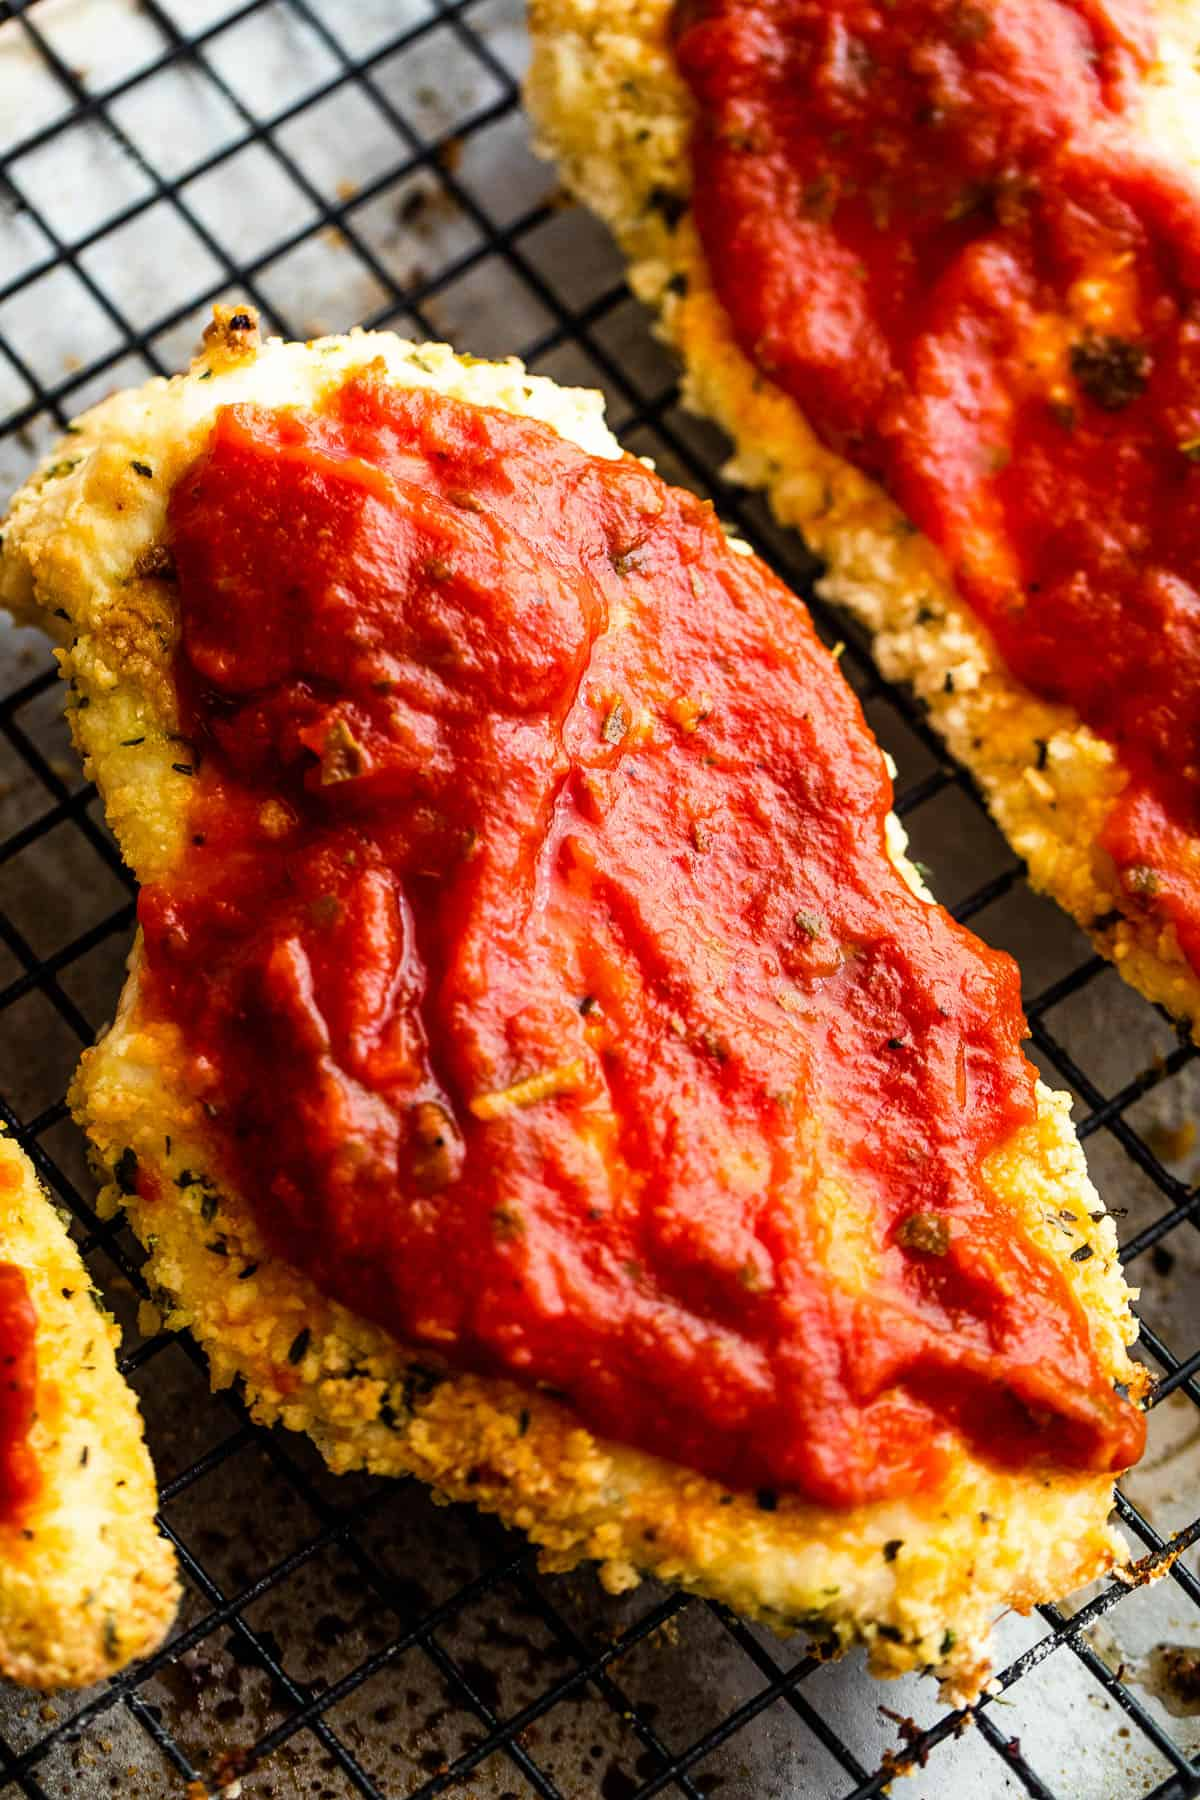 Two Pieces of Partially Cooked, Breaded Chicken with Marinara Sauce Spread on Top